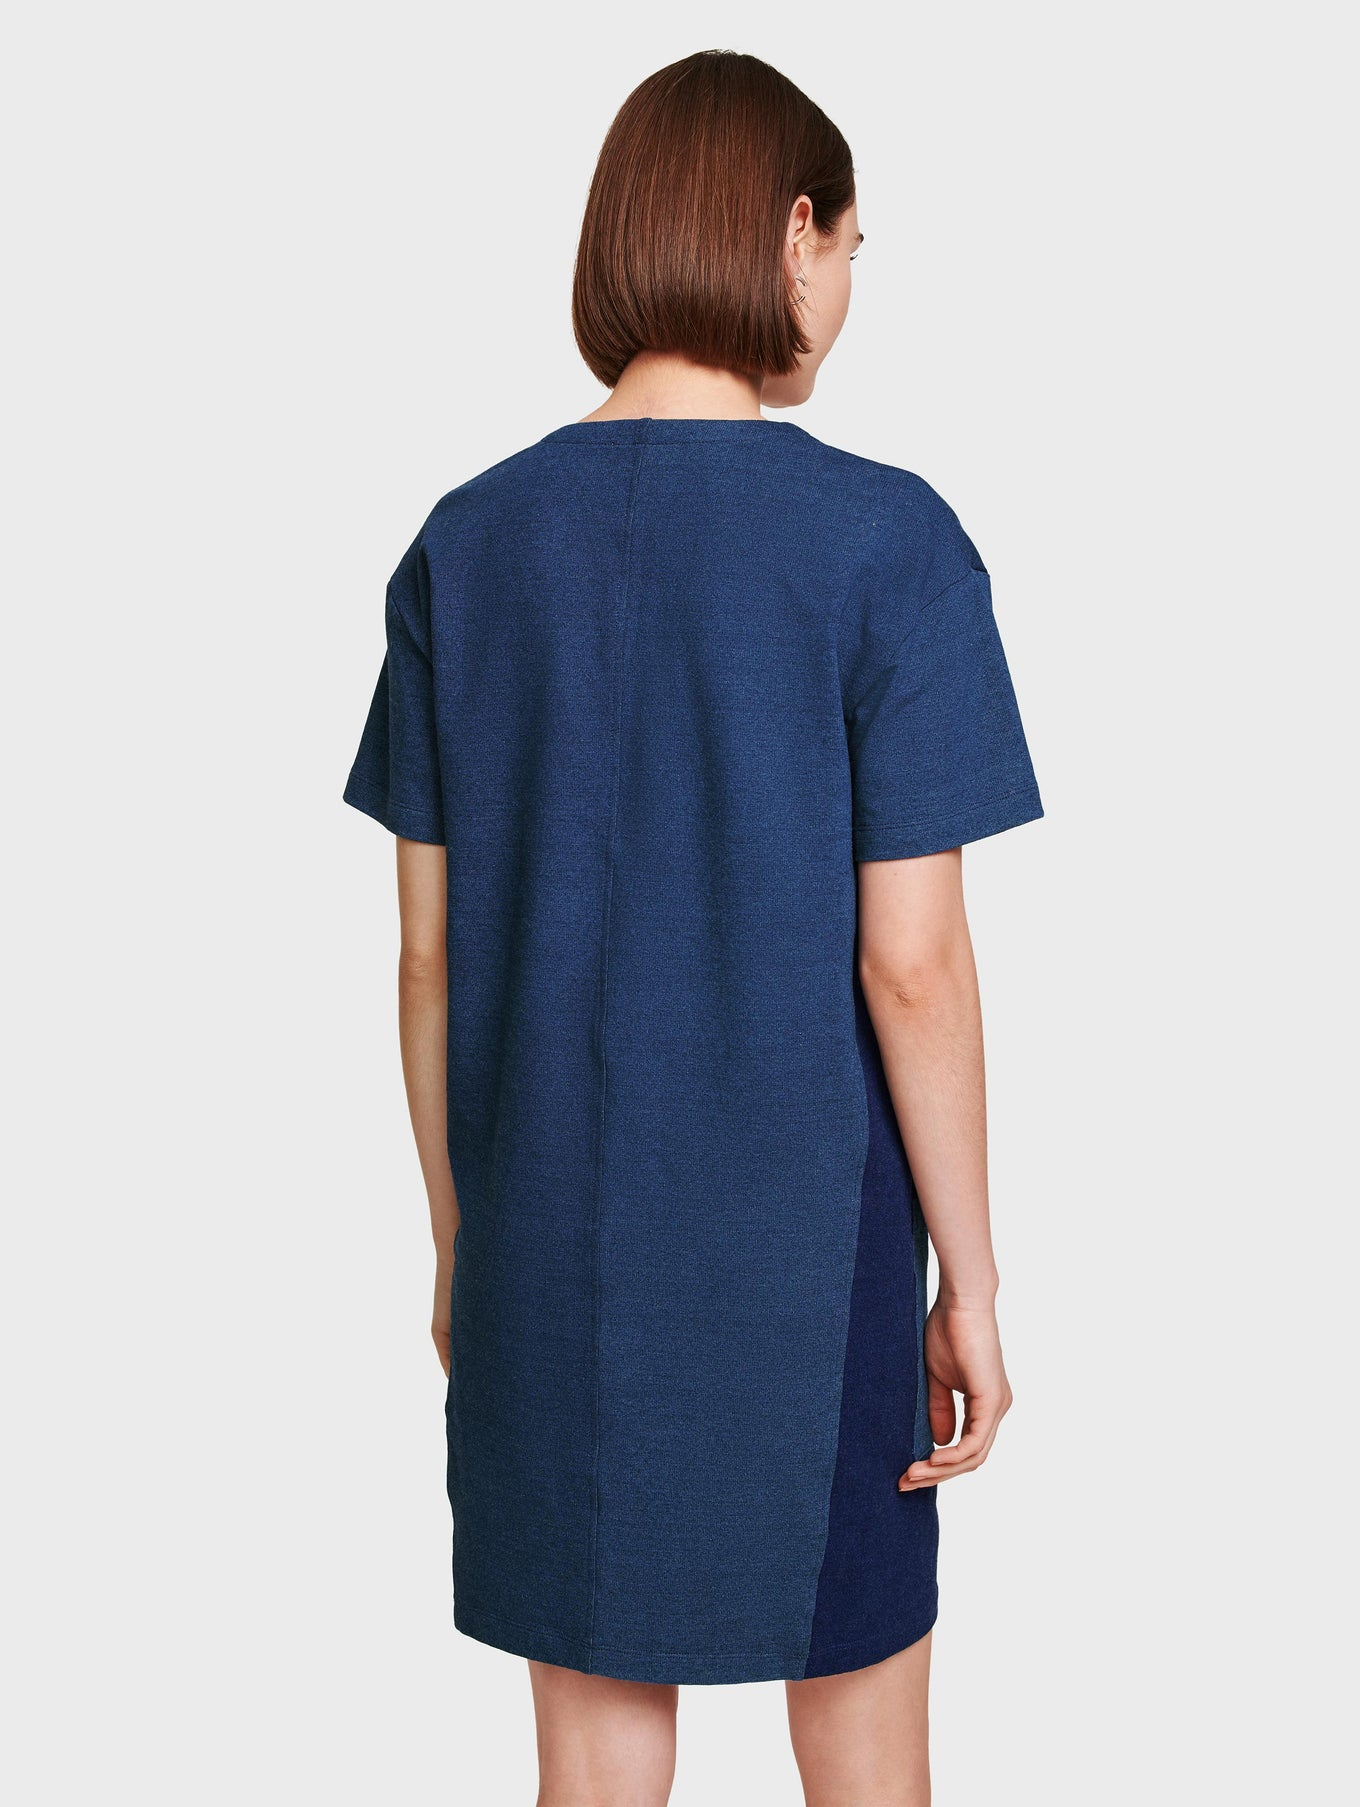 Denim Colorblock Dress